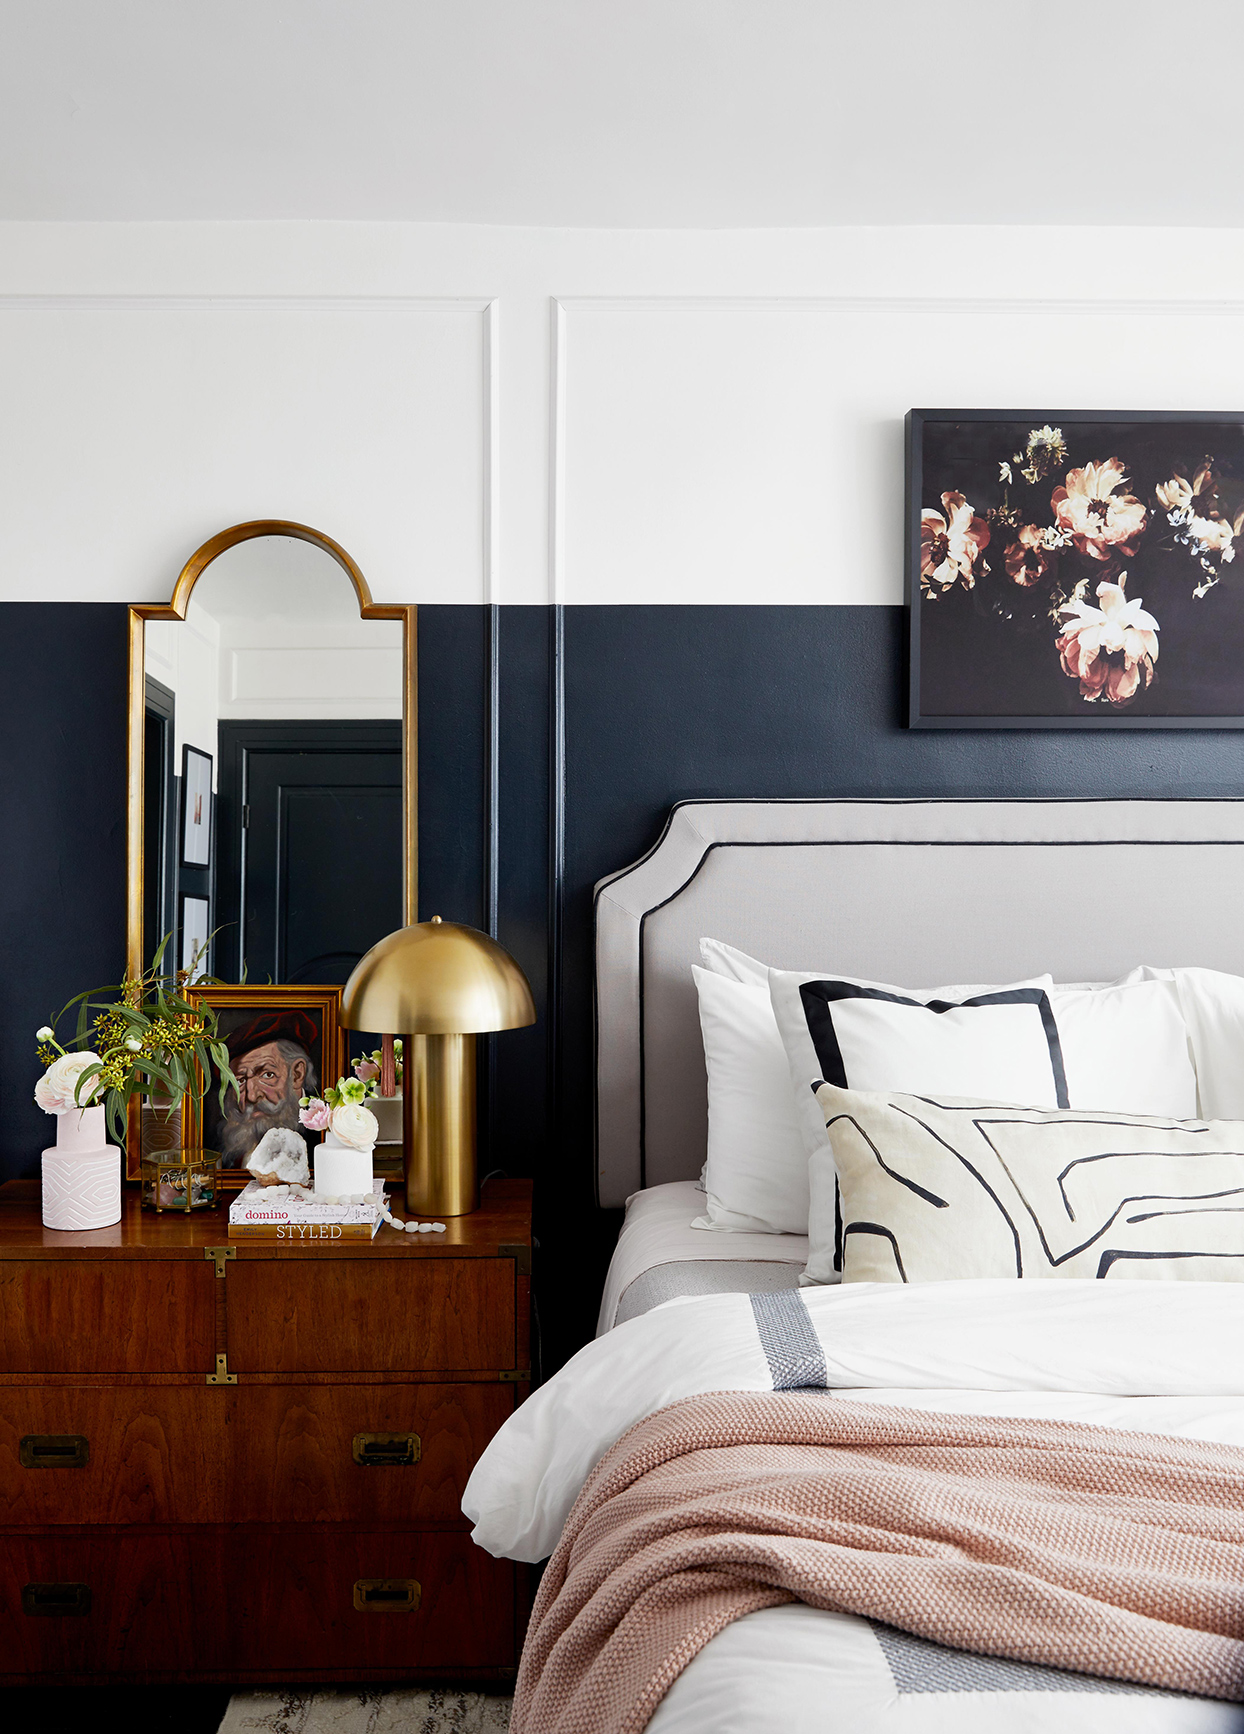 Two Tone Walls Are The Latest Design Trend We Re Seeing Everywhere Better Homes Gardens